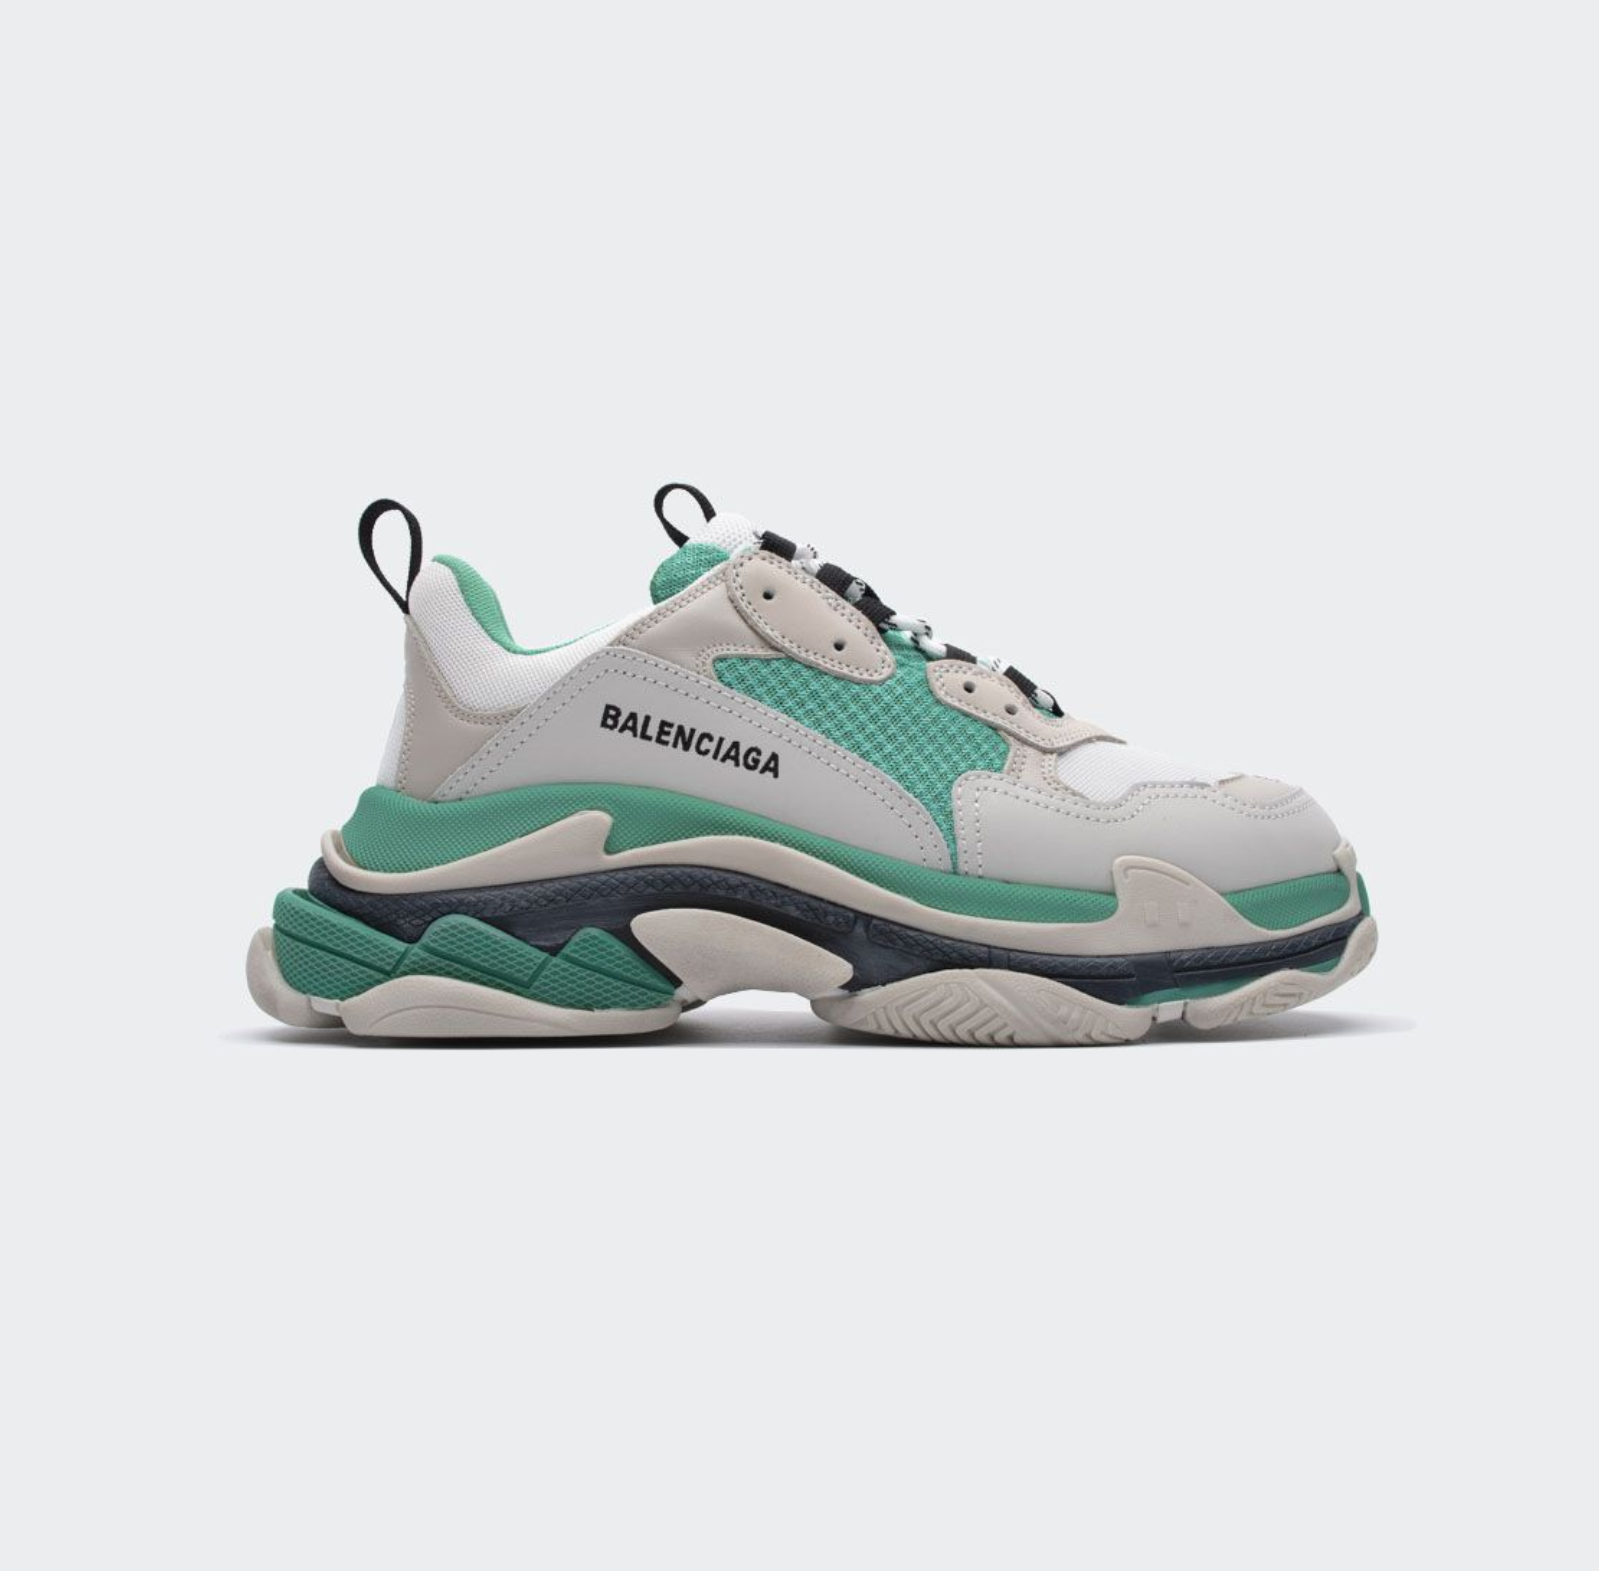 COOL KICKS: BALENCIAGA TRIPLE S 'MINT GREEN' 524039W09E1